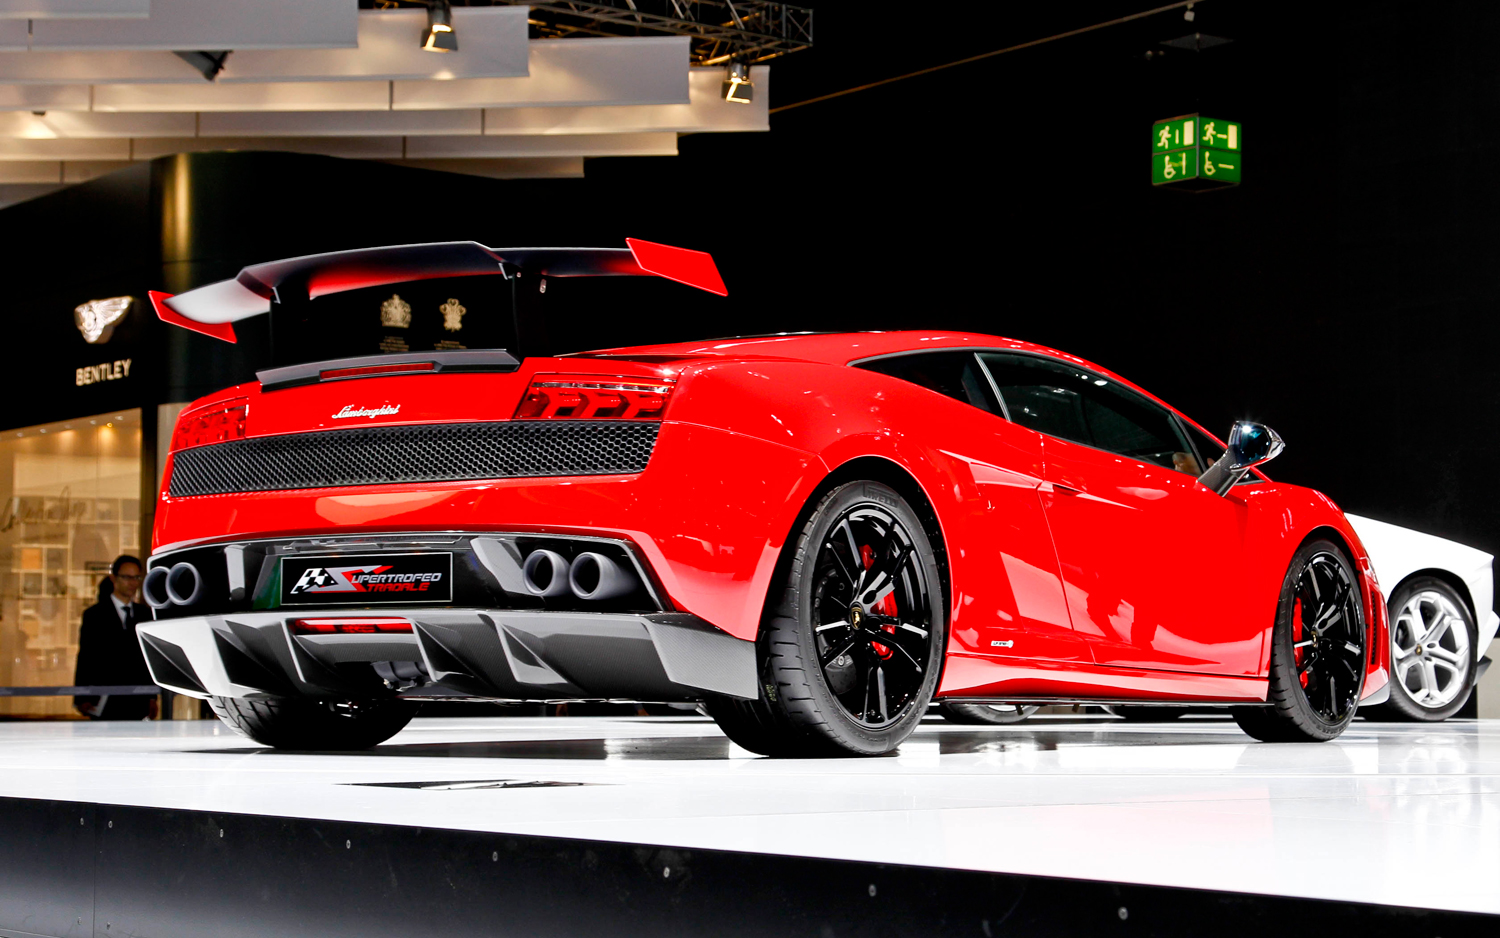 2018 Lamborghini Gallardo Car Photos Catalog 2019